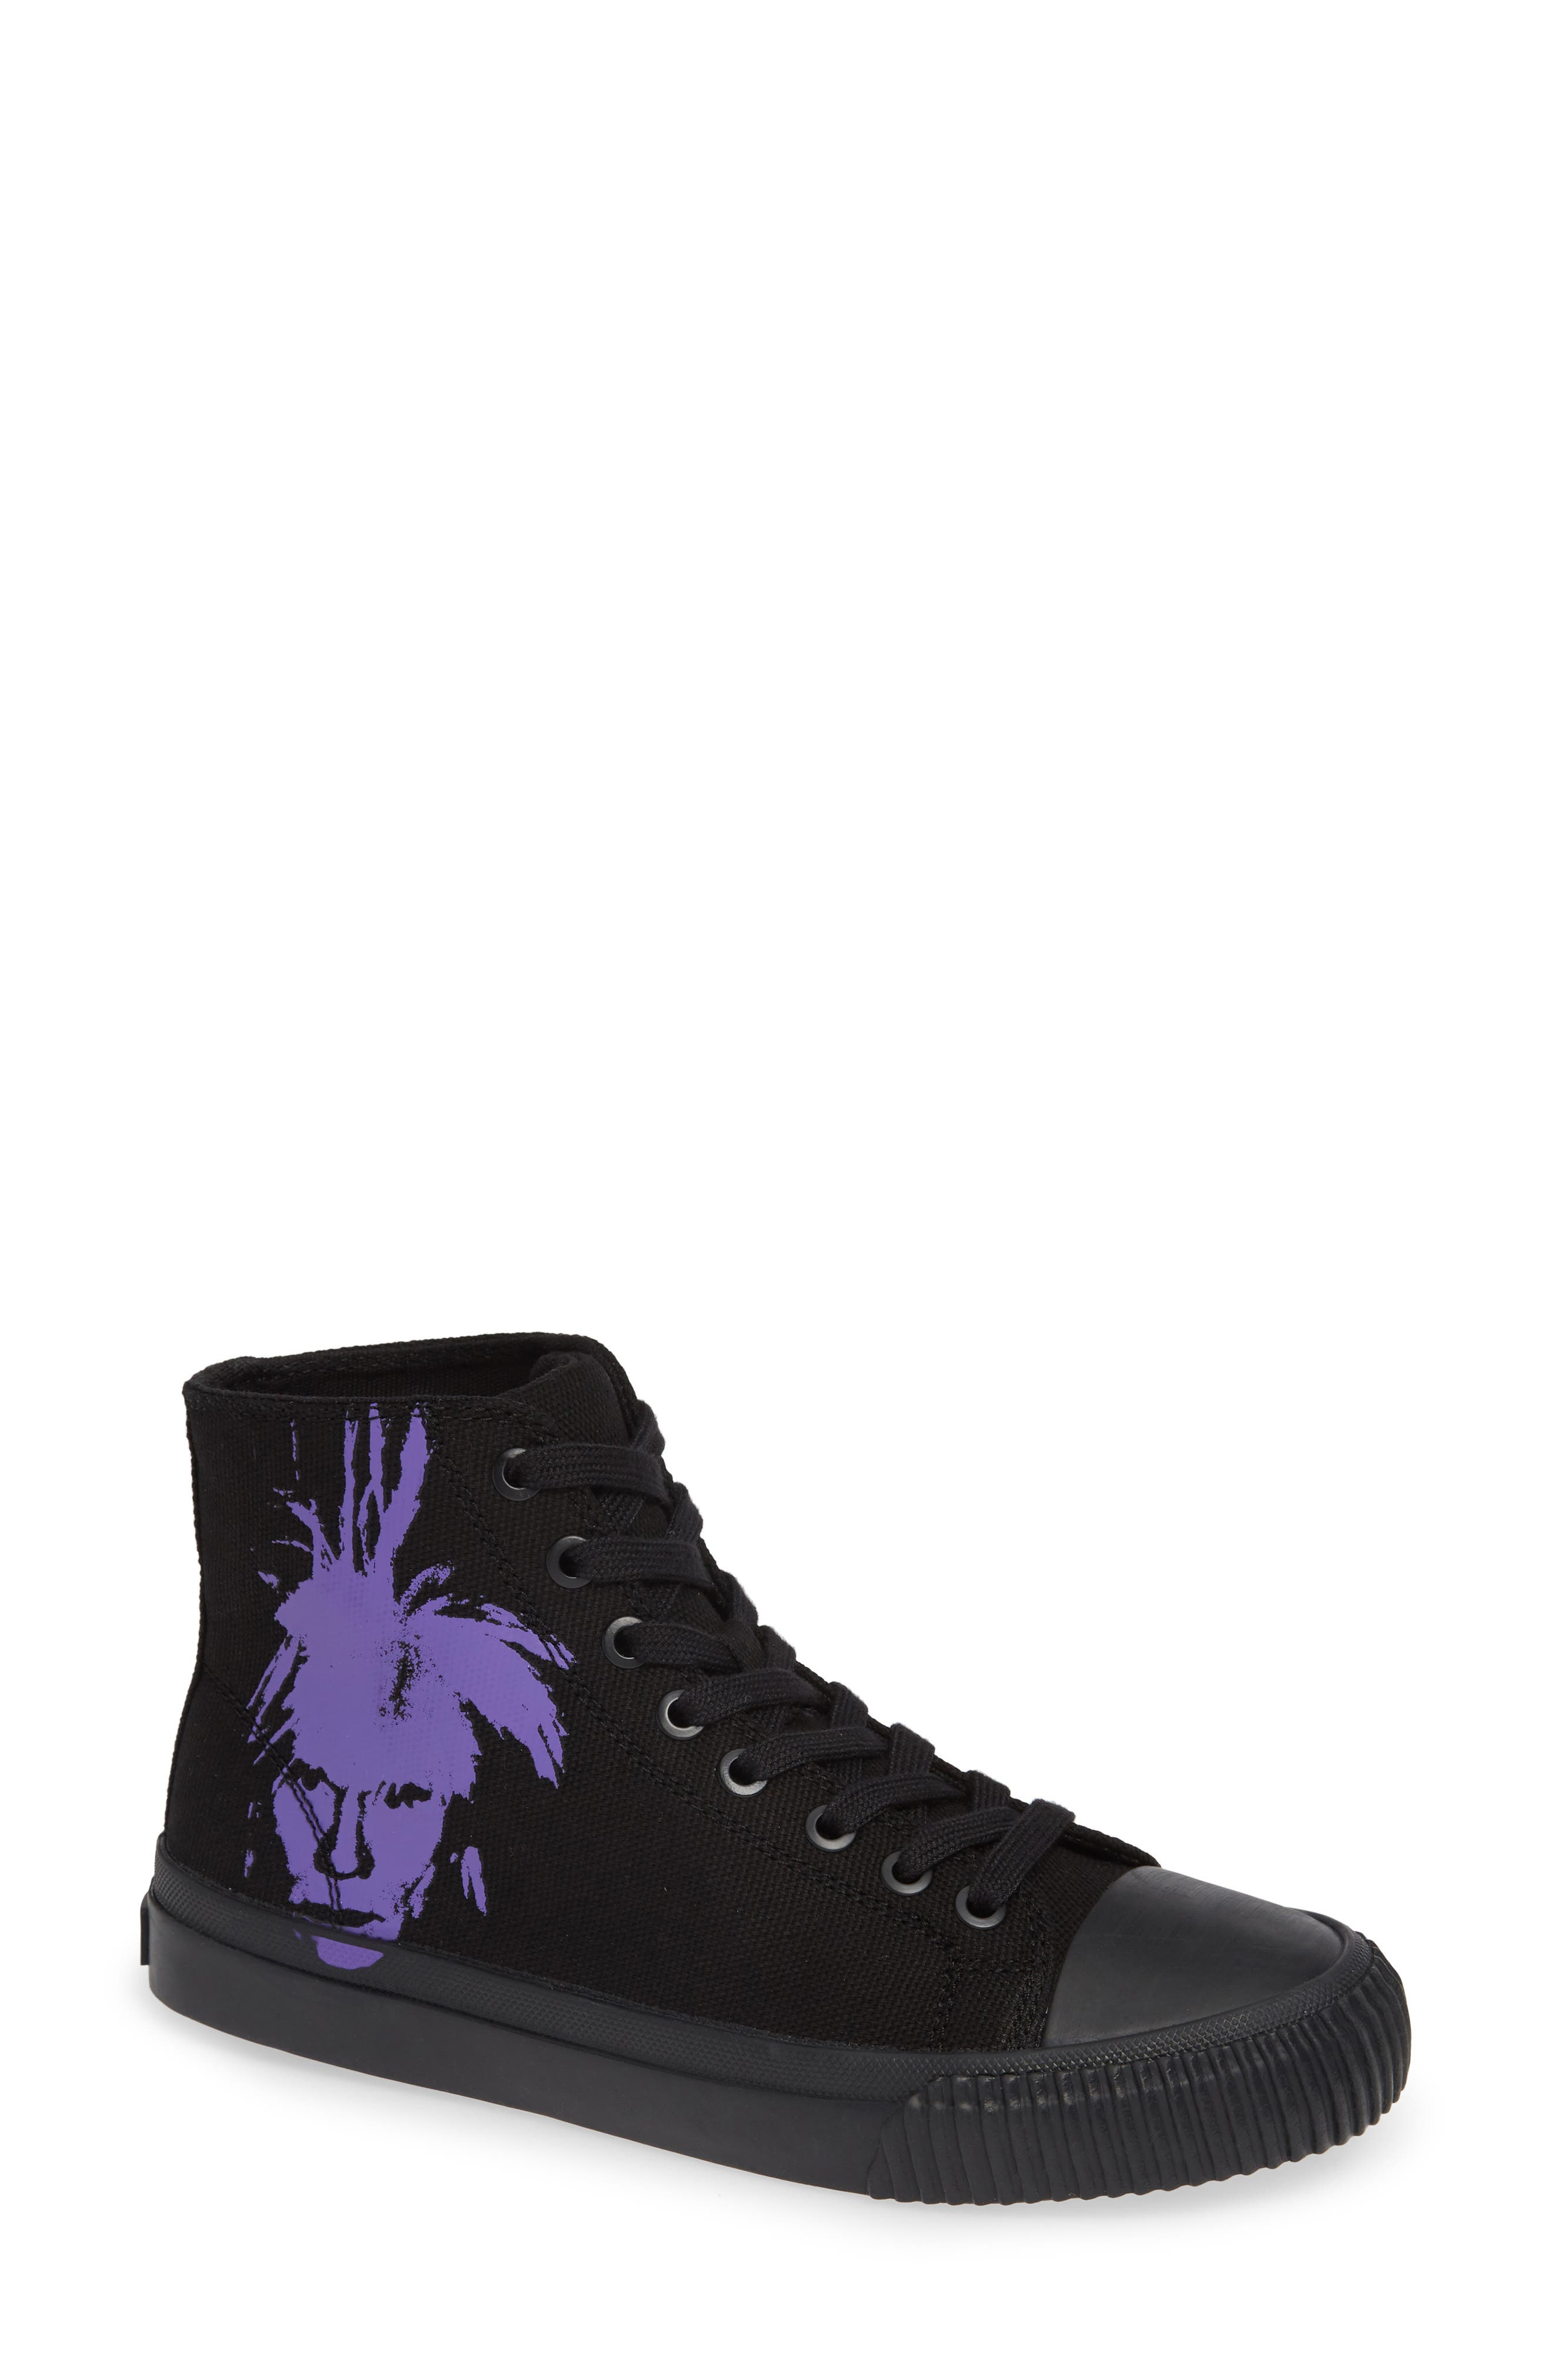 Iconica High Top Sneaker,                             Main thumbnail 1, color,                             BLACK/ PURPLE